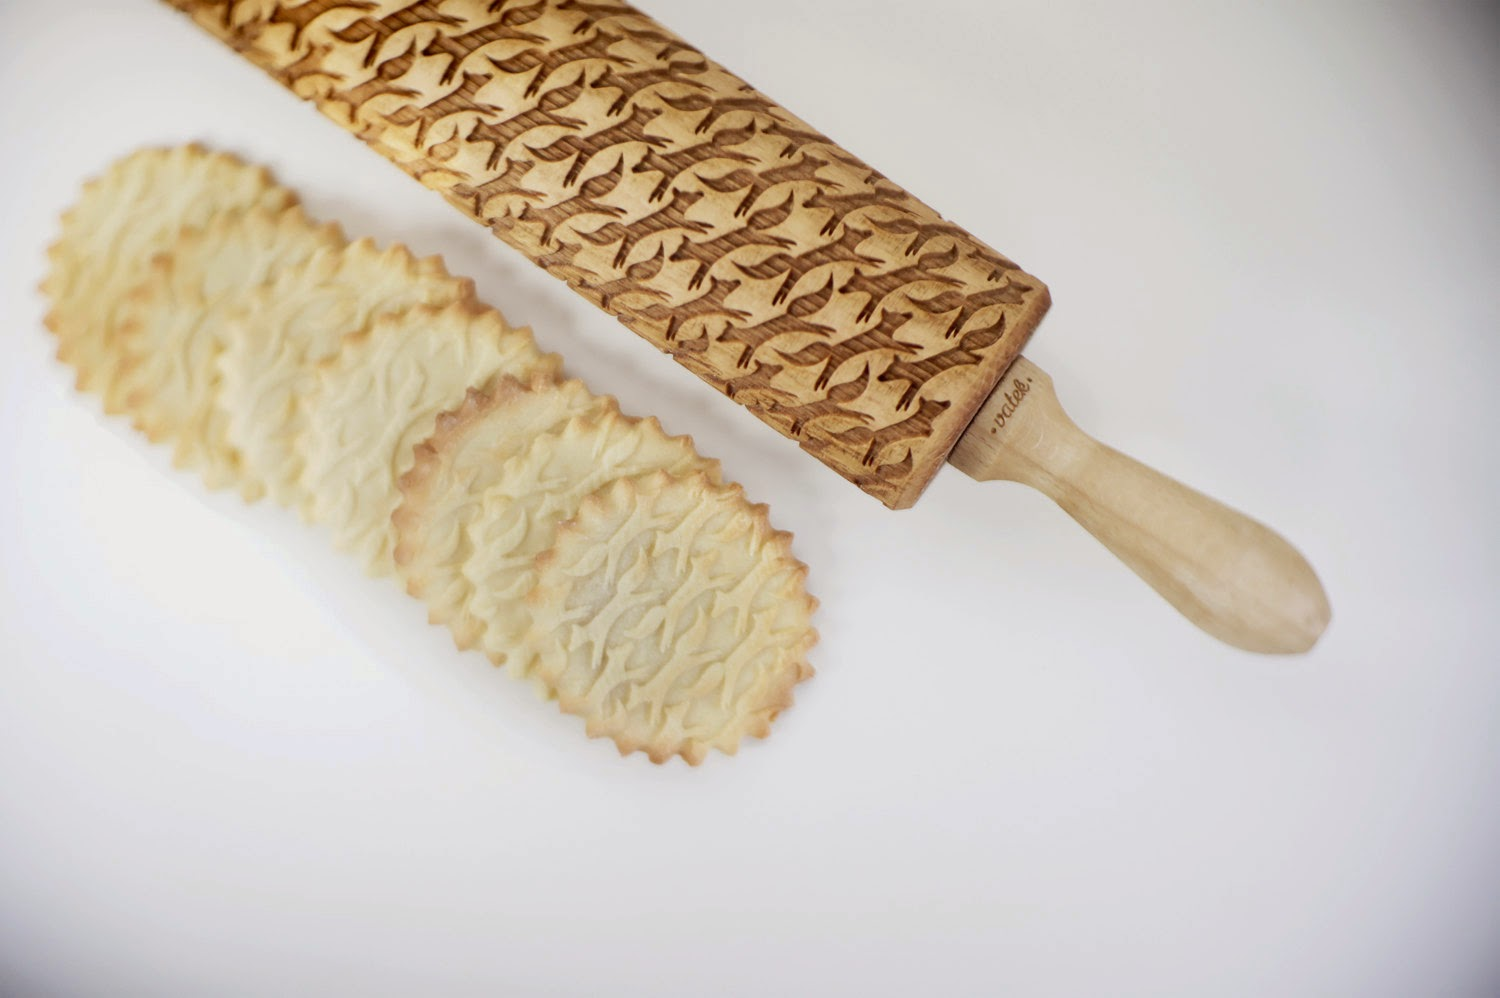 08-Zuzia-Kozerska-Rolling-Pin-for-Food-Stamp-Designs-www-designstack-co